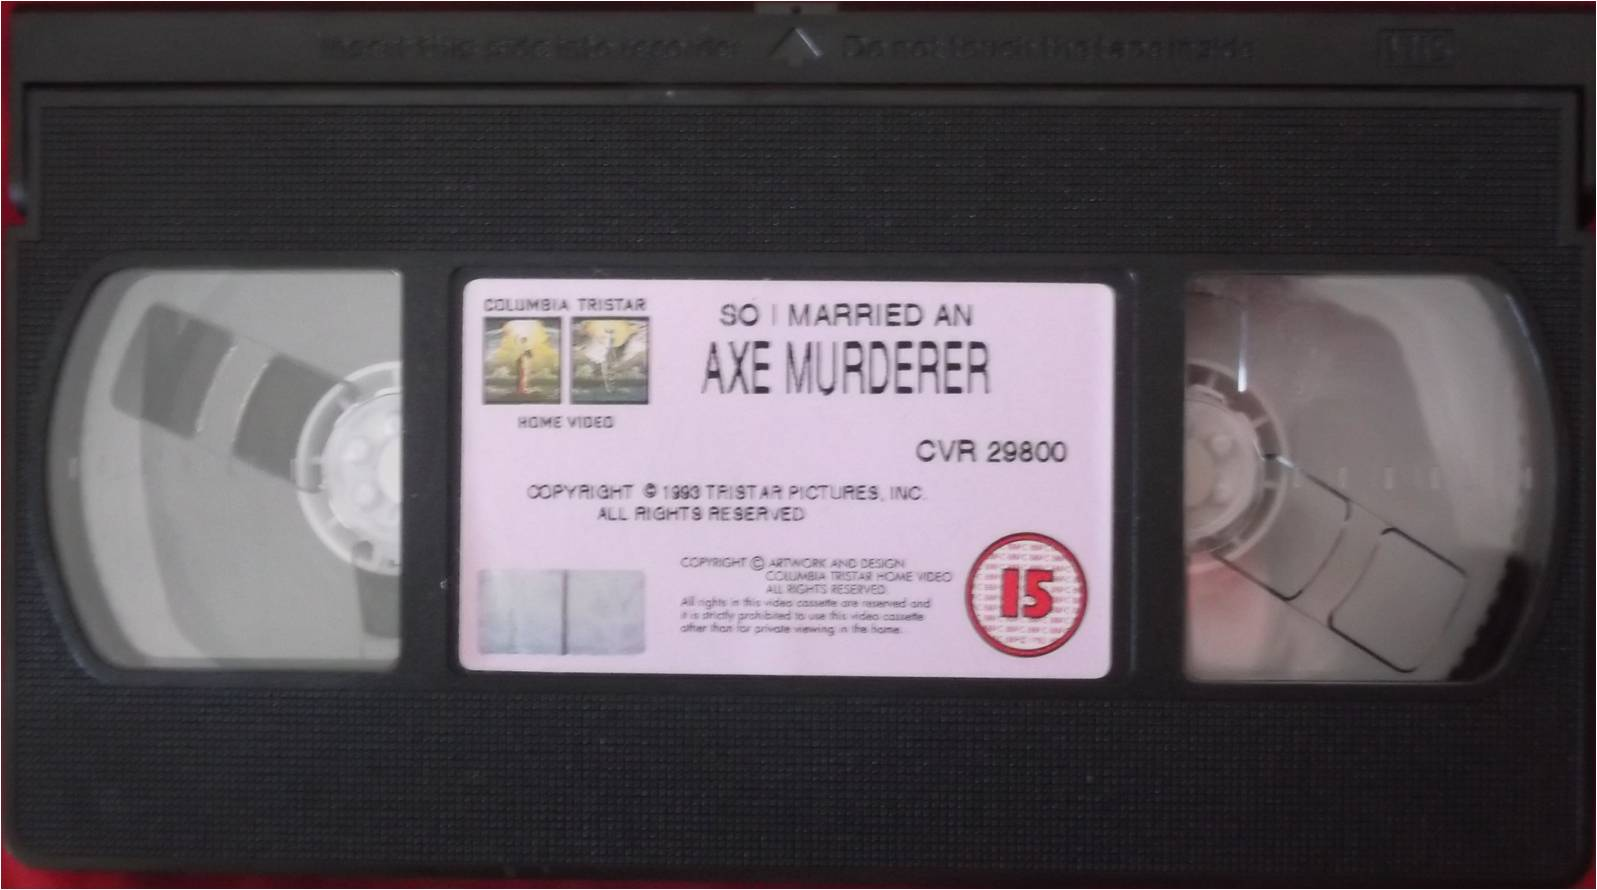 Columbia TriStar Home Video 1993 VHS Tape Example